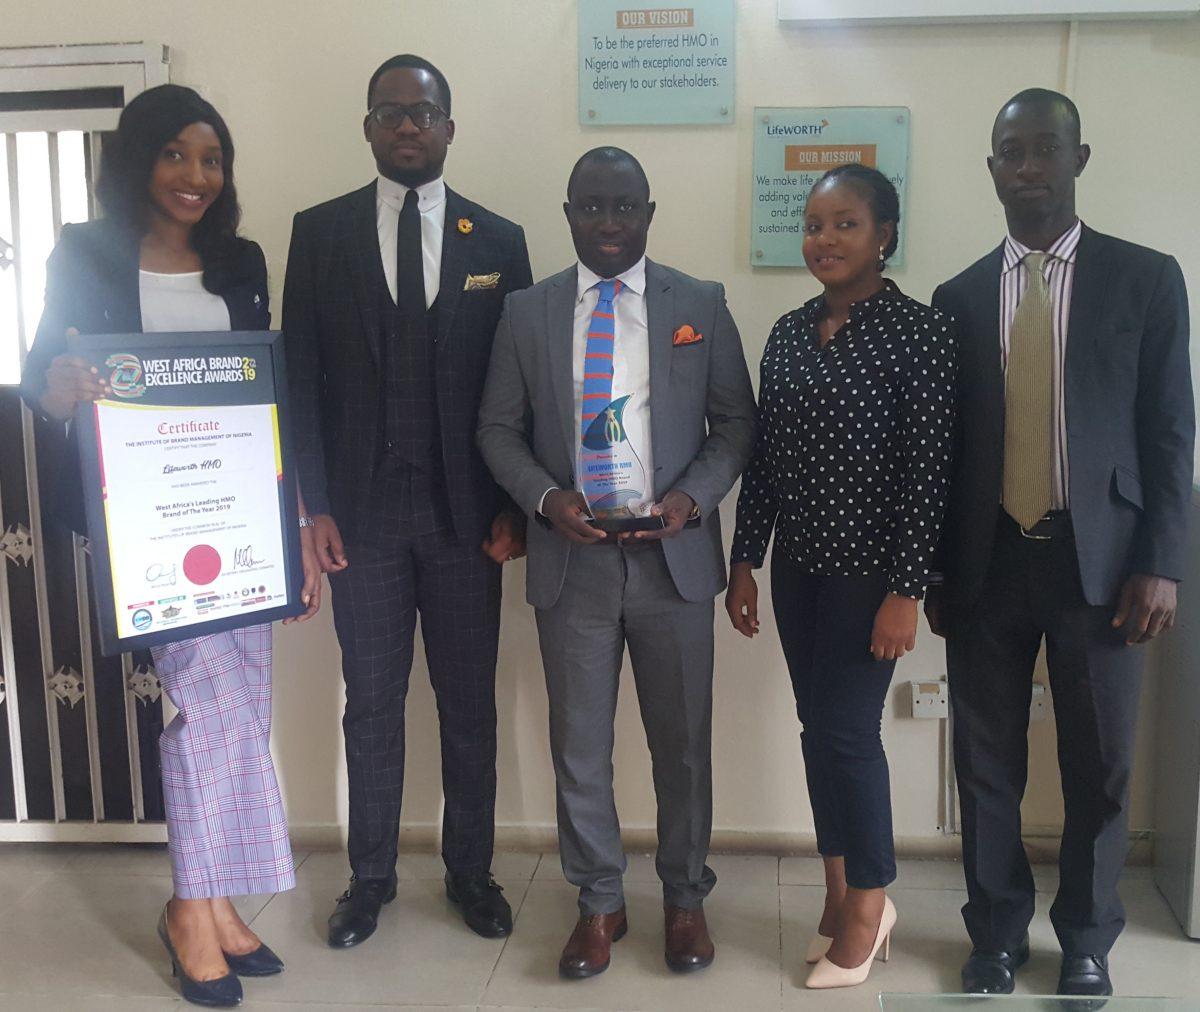 LifeWORTH wins Nigeria's Leading HMO Brand 2019